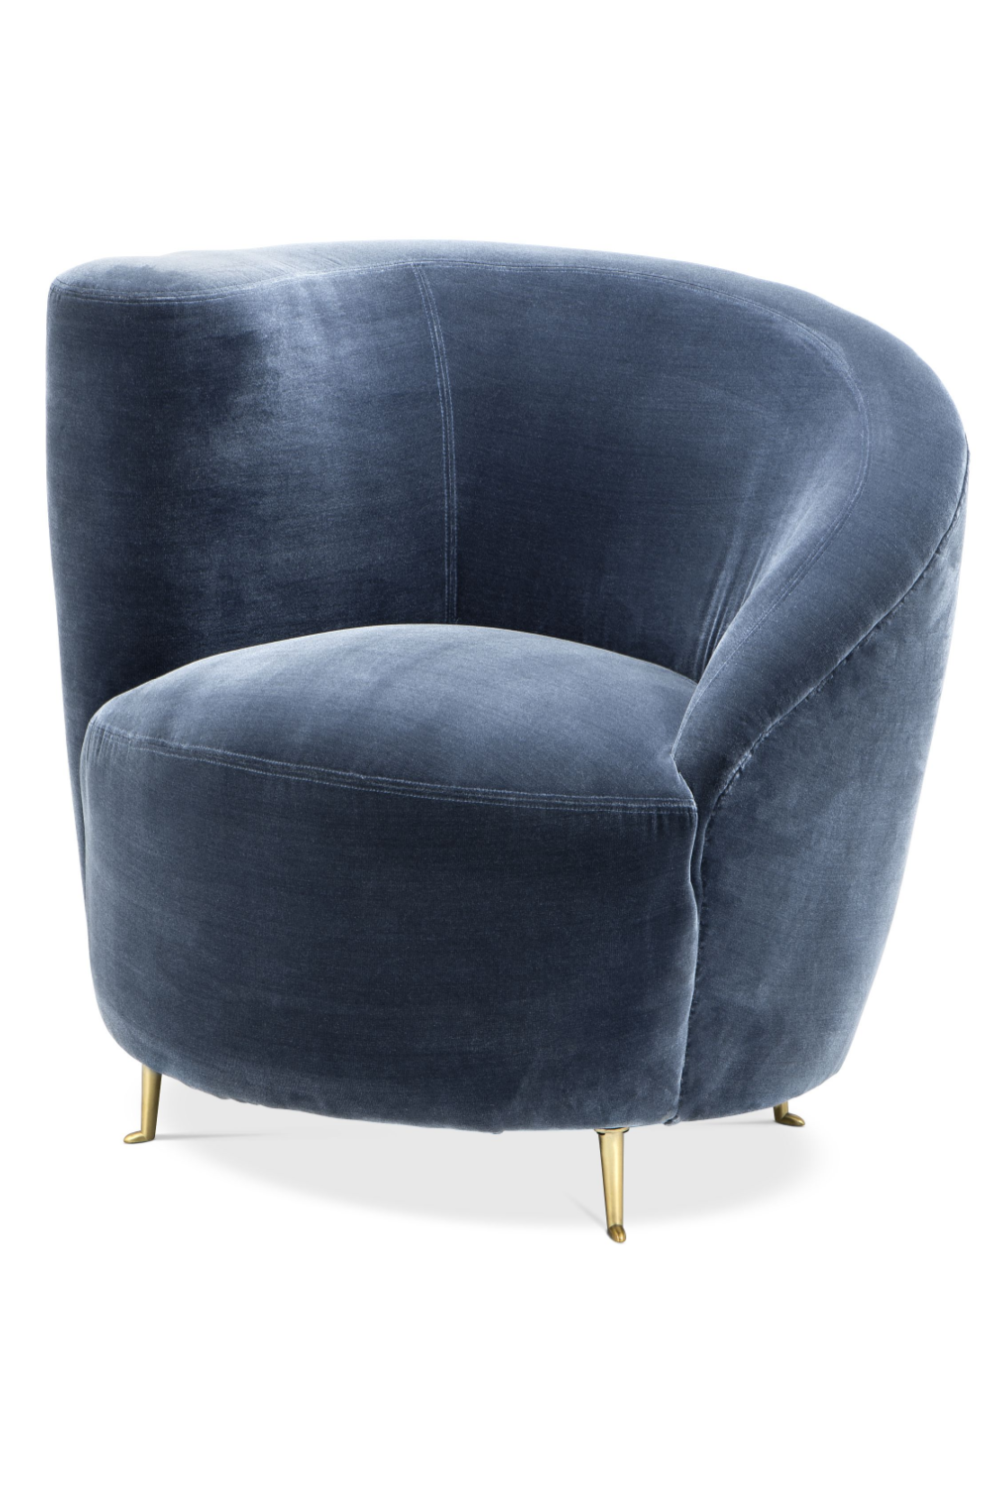 Blue Velvet Curved Back Chair | Eichholtz Khan